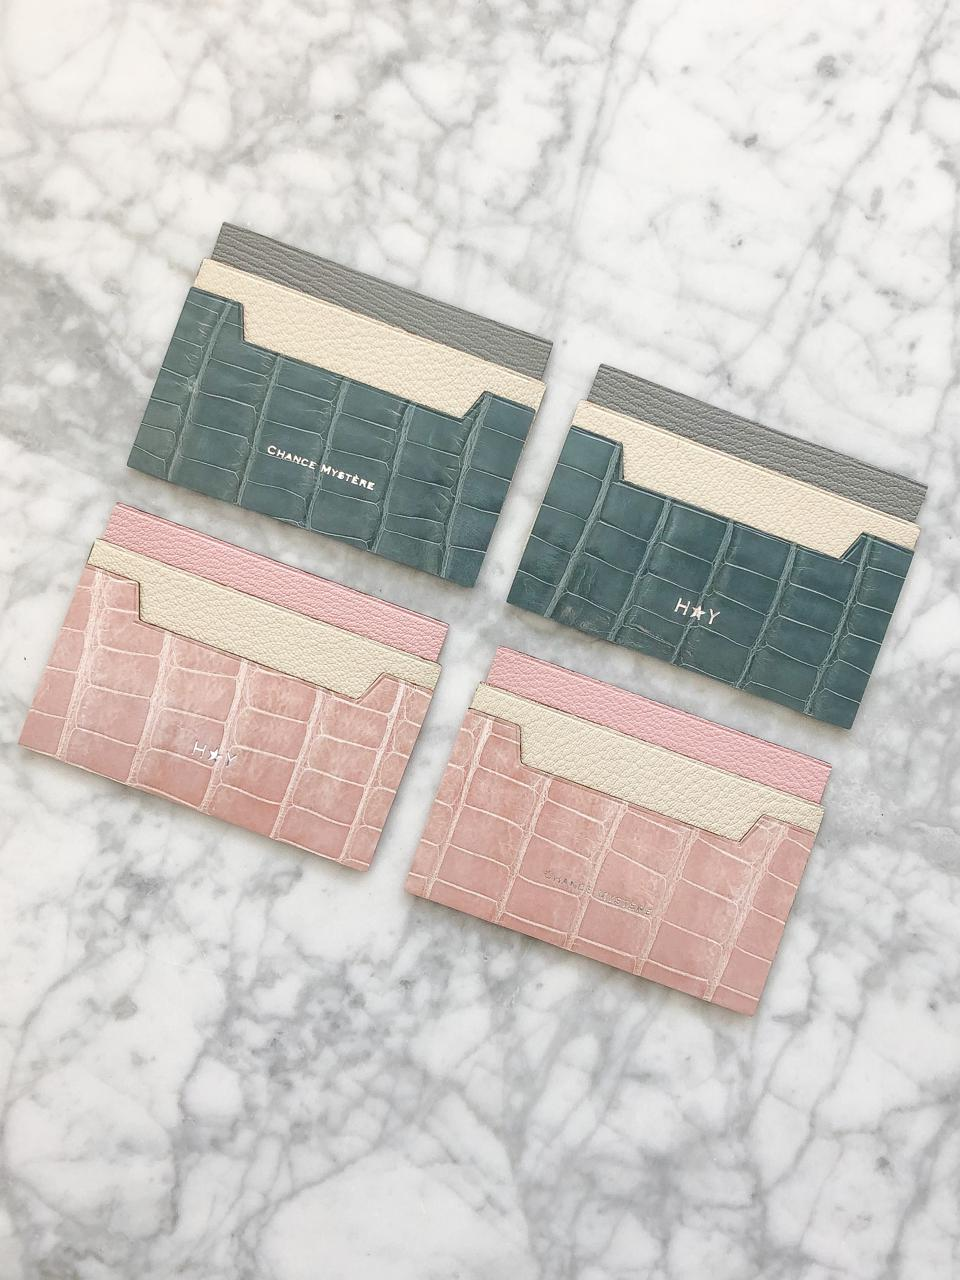 Monogrammed card holders by Chance Mystère